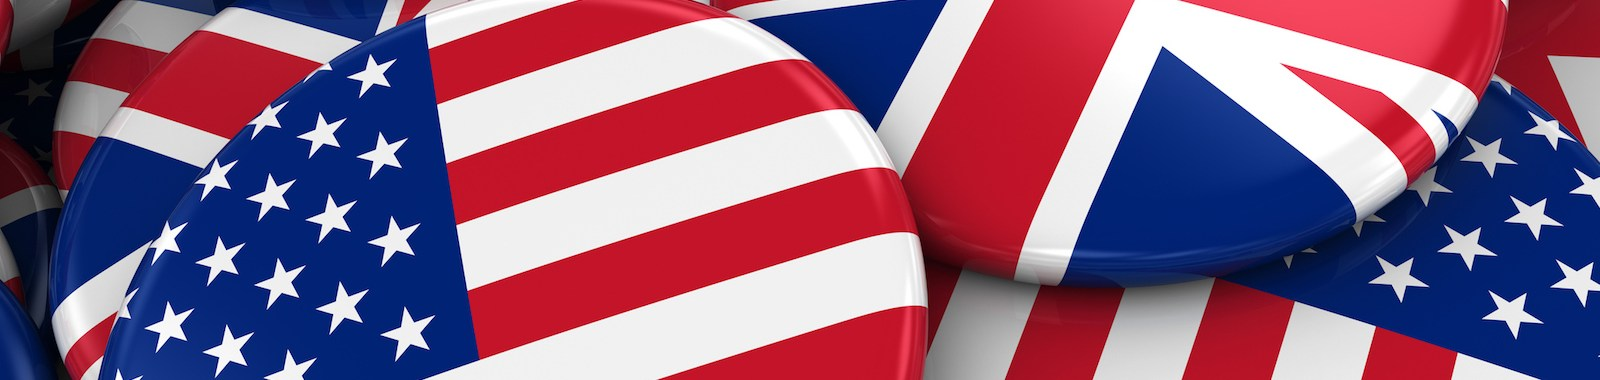 Flag Badges of America and Britain in Pile - Concept image for US and UK Relations